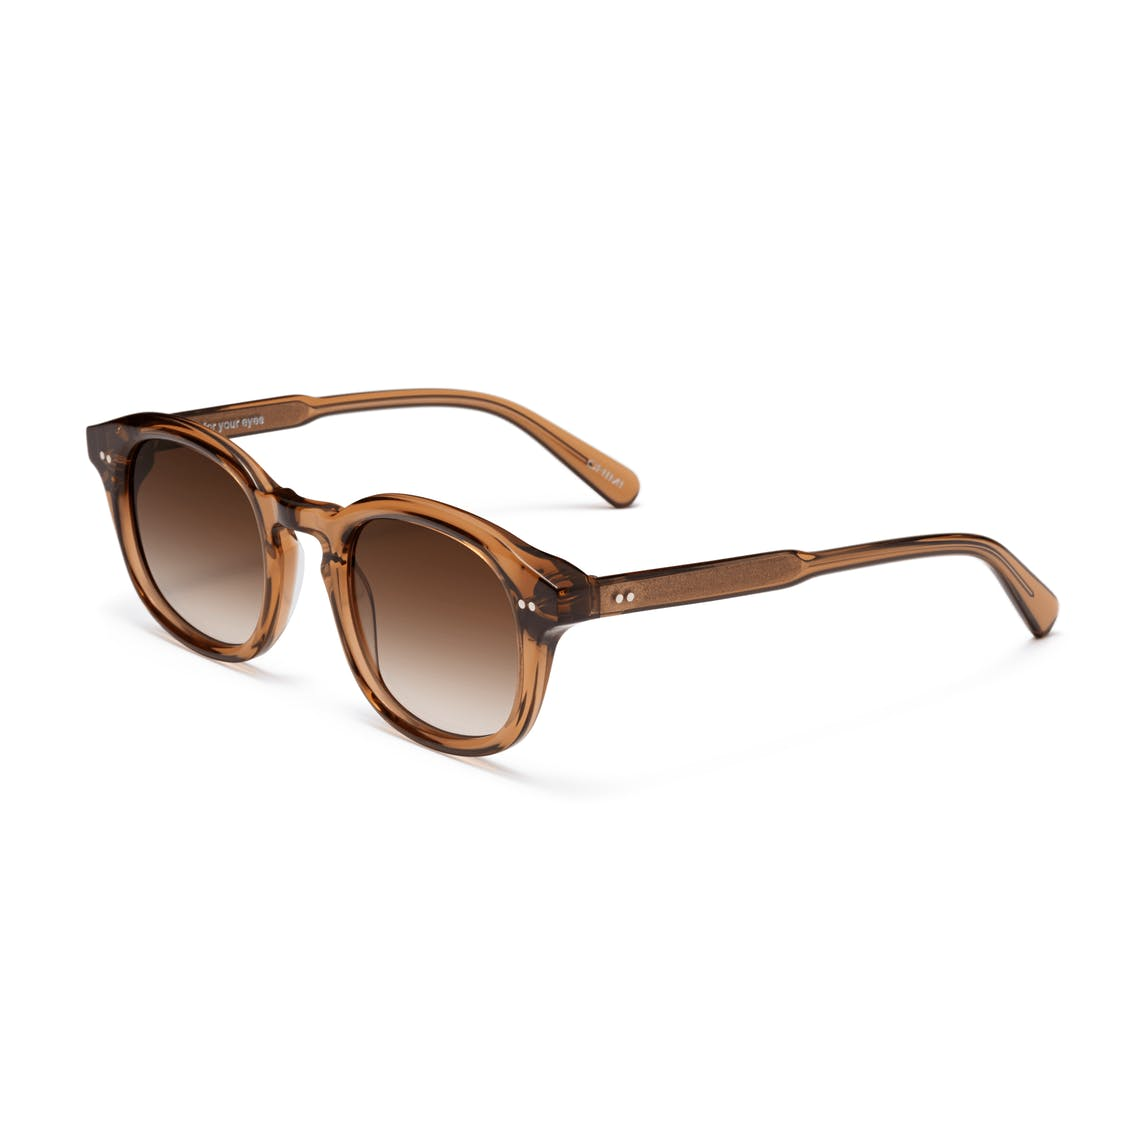 #102 LAB SERIES / GRADIENT LENS / BROWN